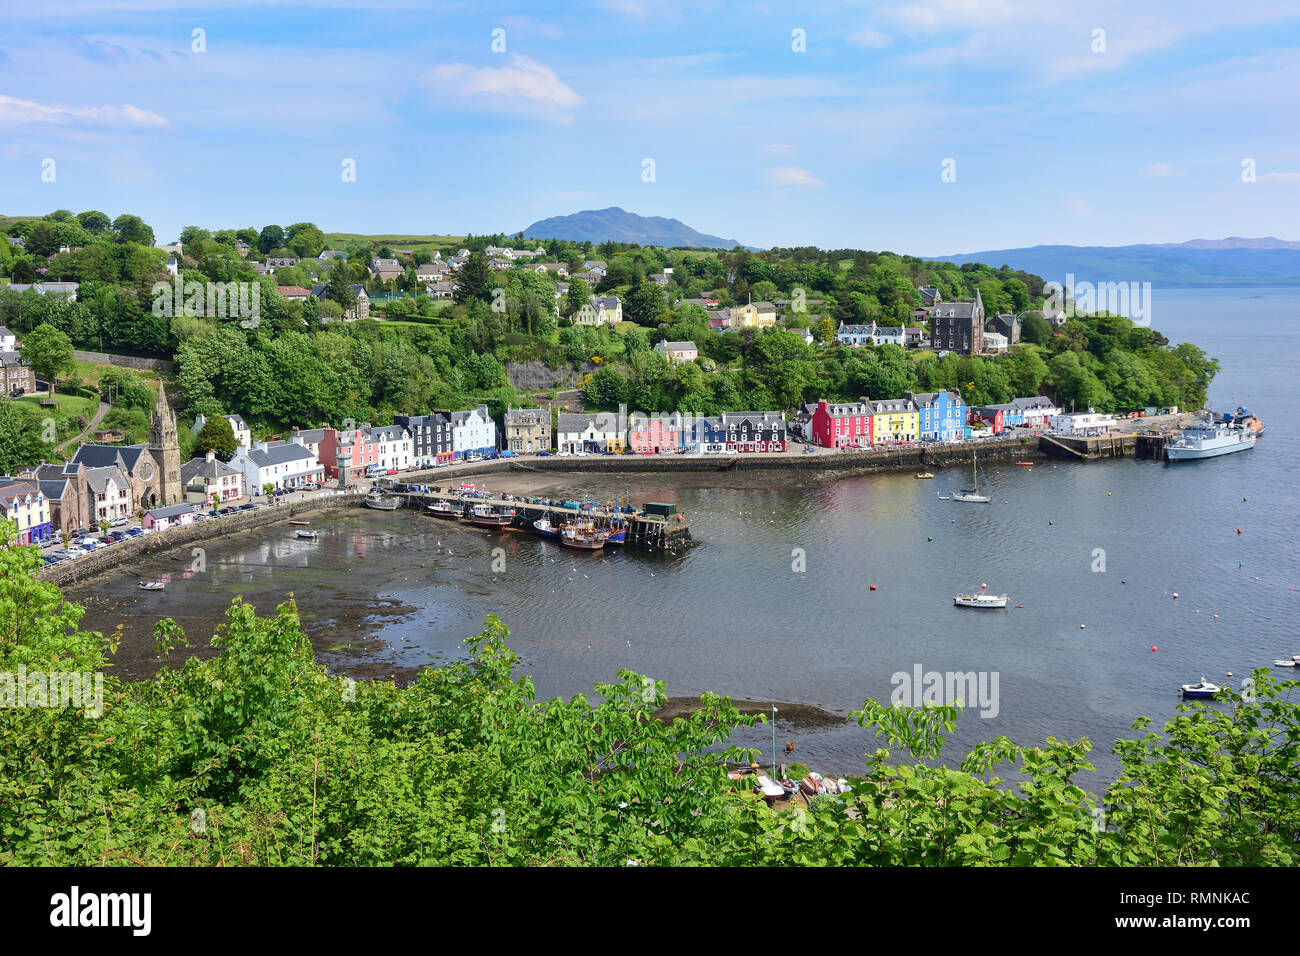 Colourful houses and fishing boats on quayside, Tobermory, Isle of Bute, Inner Hebrides, Argyll and Bute, Scotland, United Kingdom - Stock Image